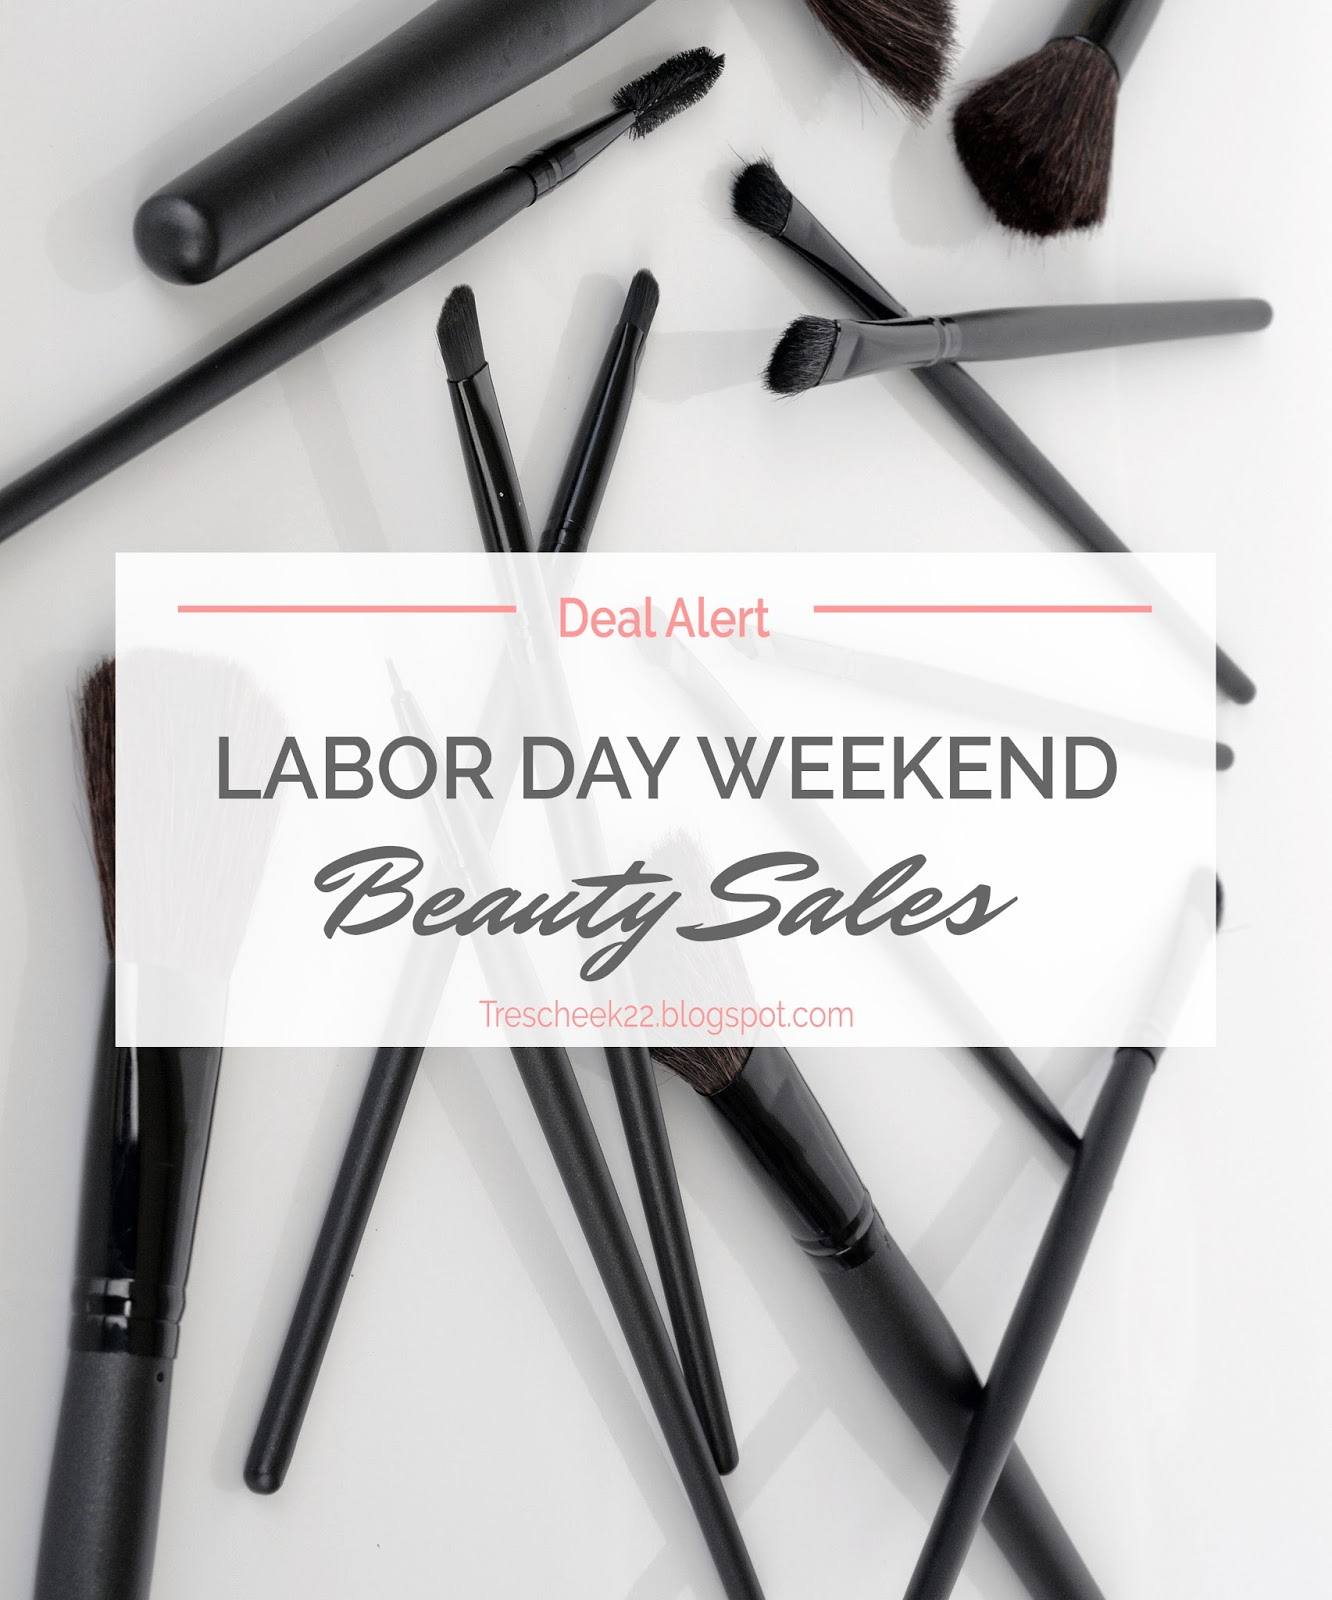 Deal Alert: Labor Day Weekend Beauty Sales